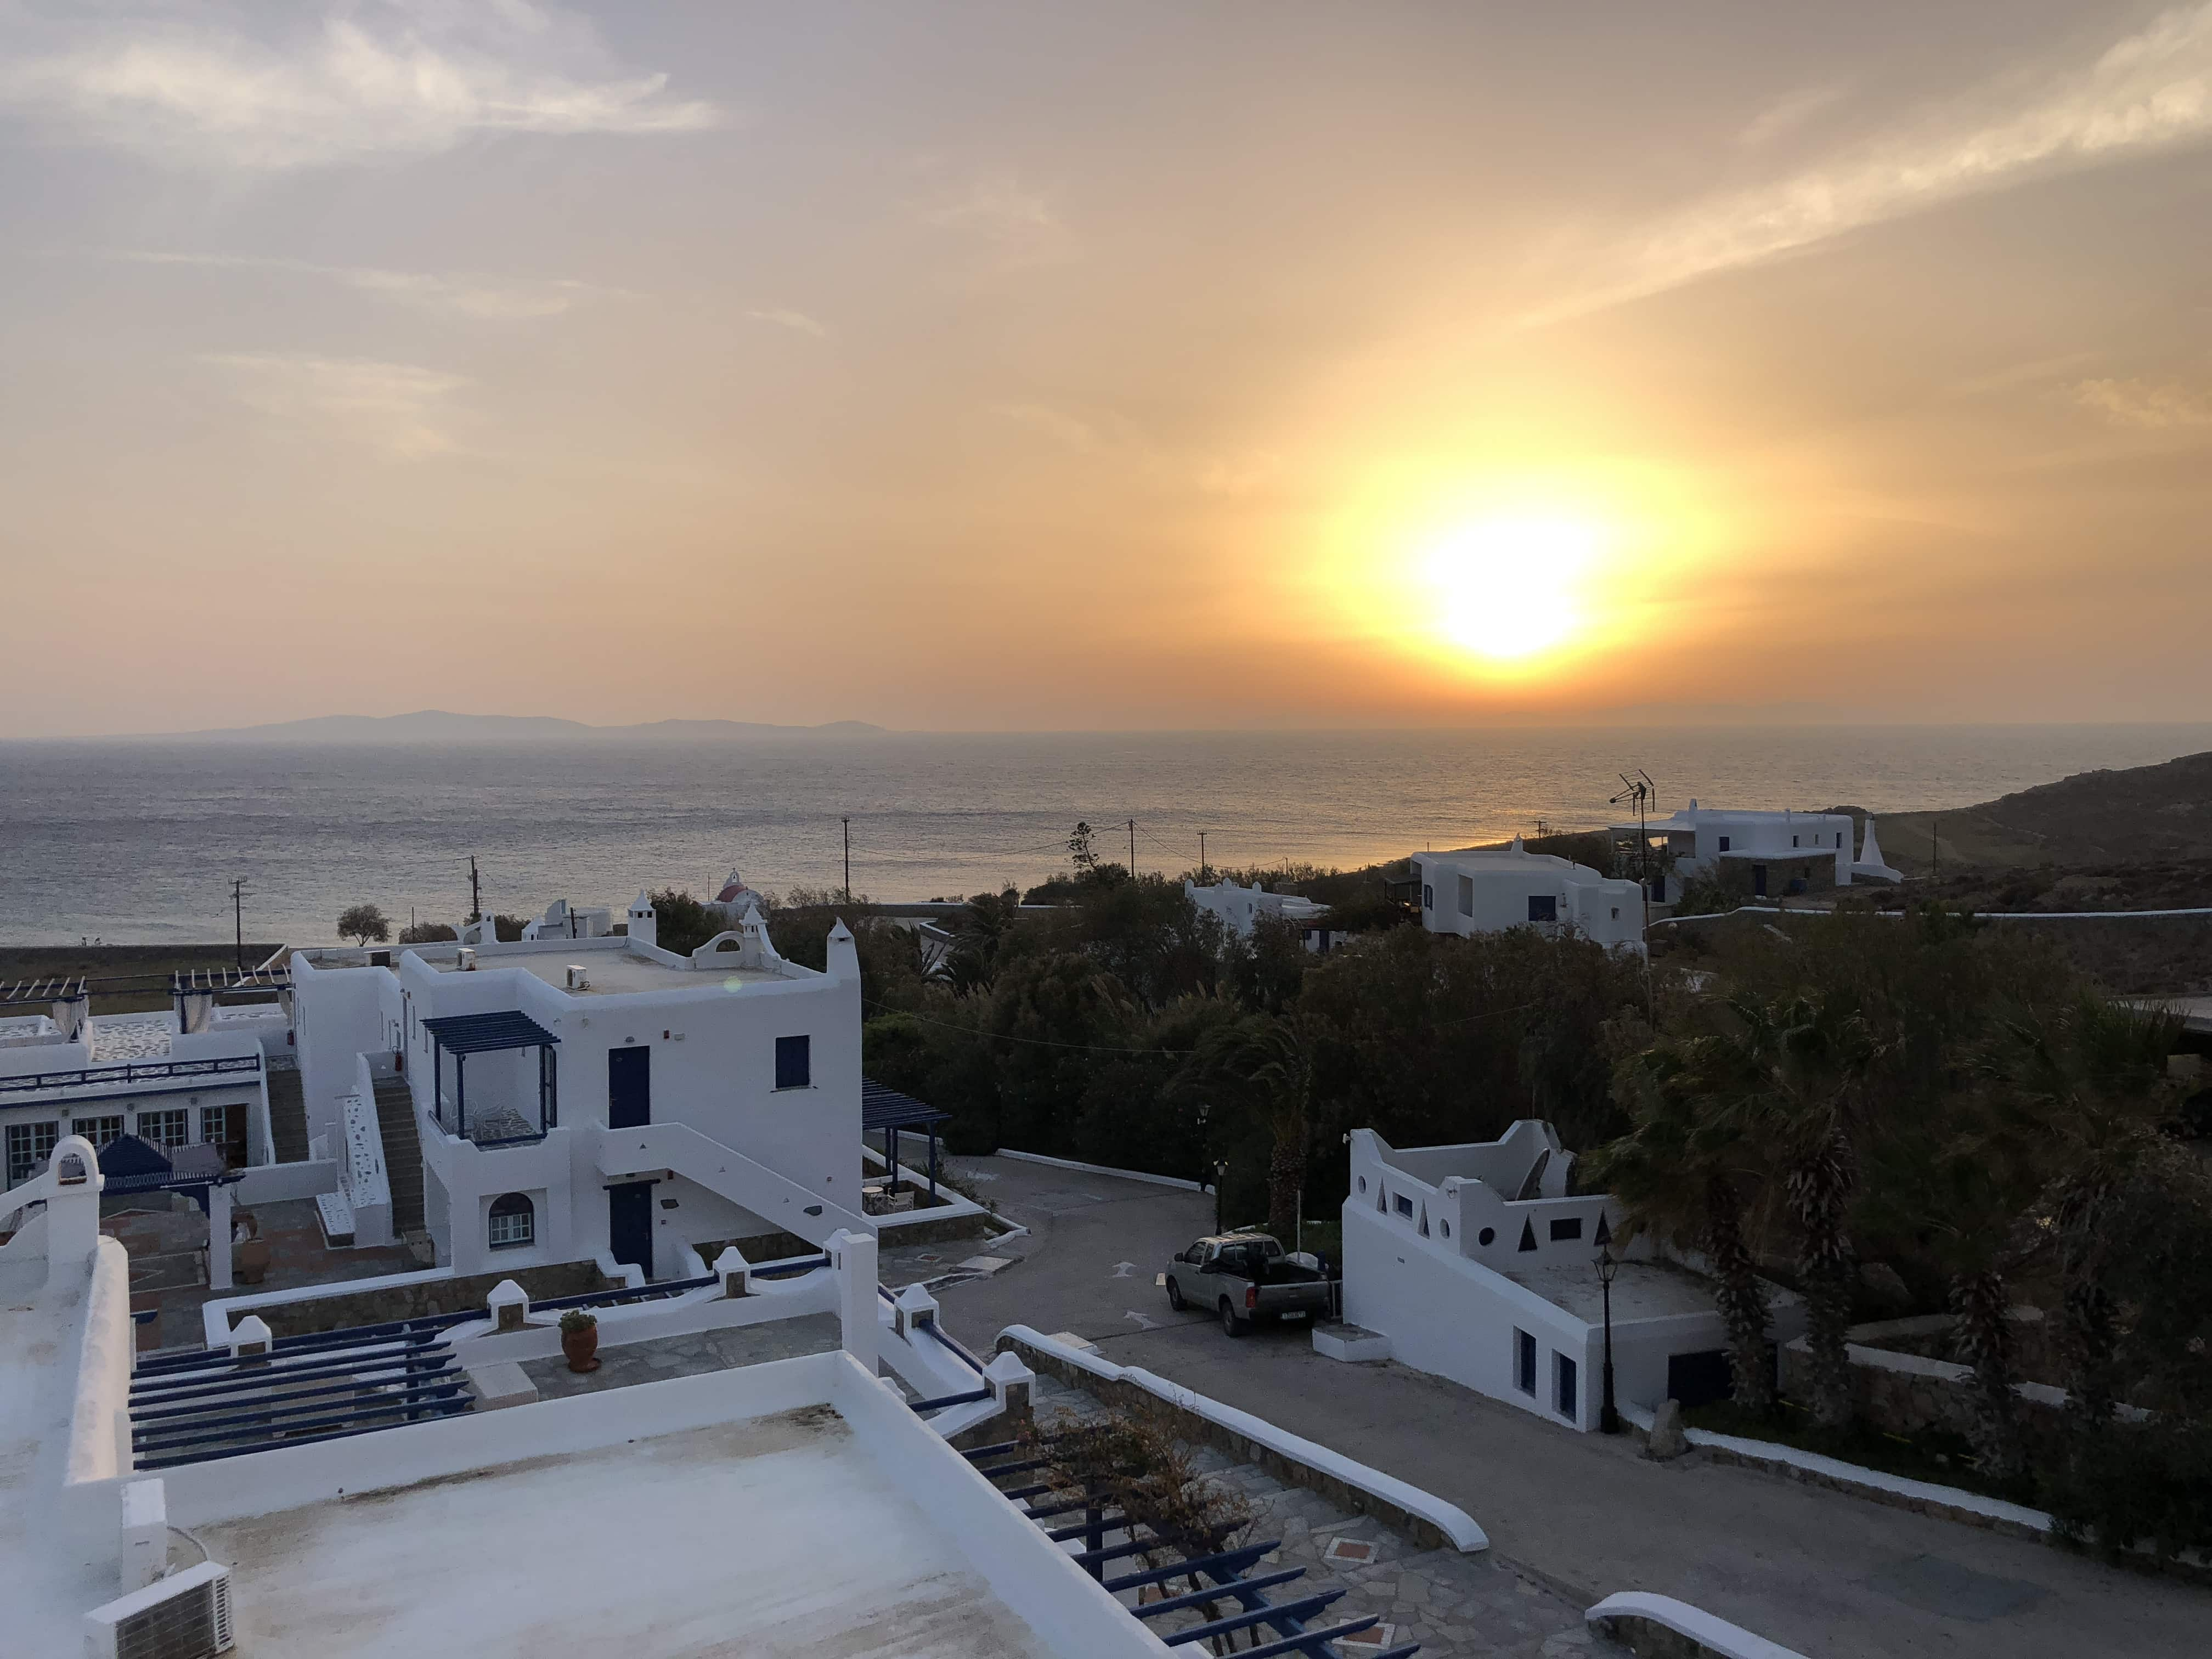 Things to do in Mykonos, Places to visit in Mykonos, Food to try in Mykonos, San Marco Hotel in Mykonos